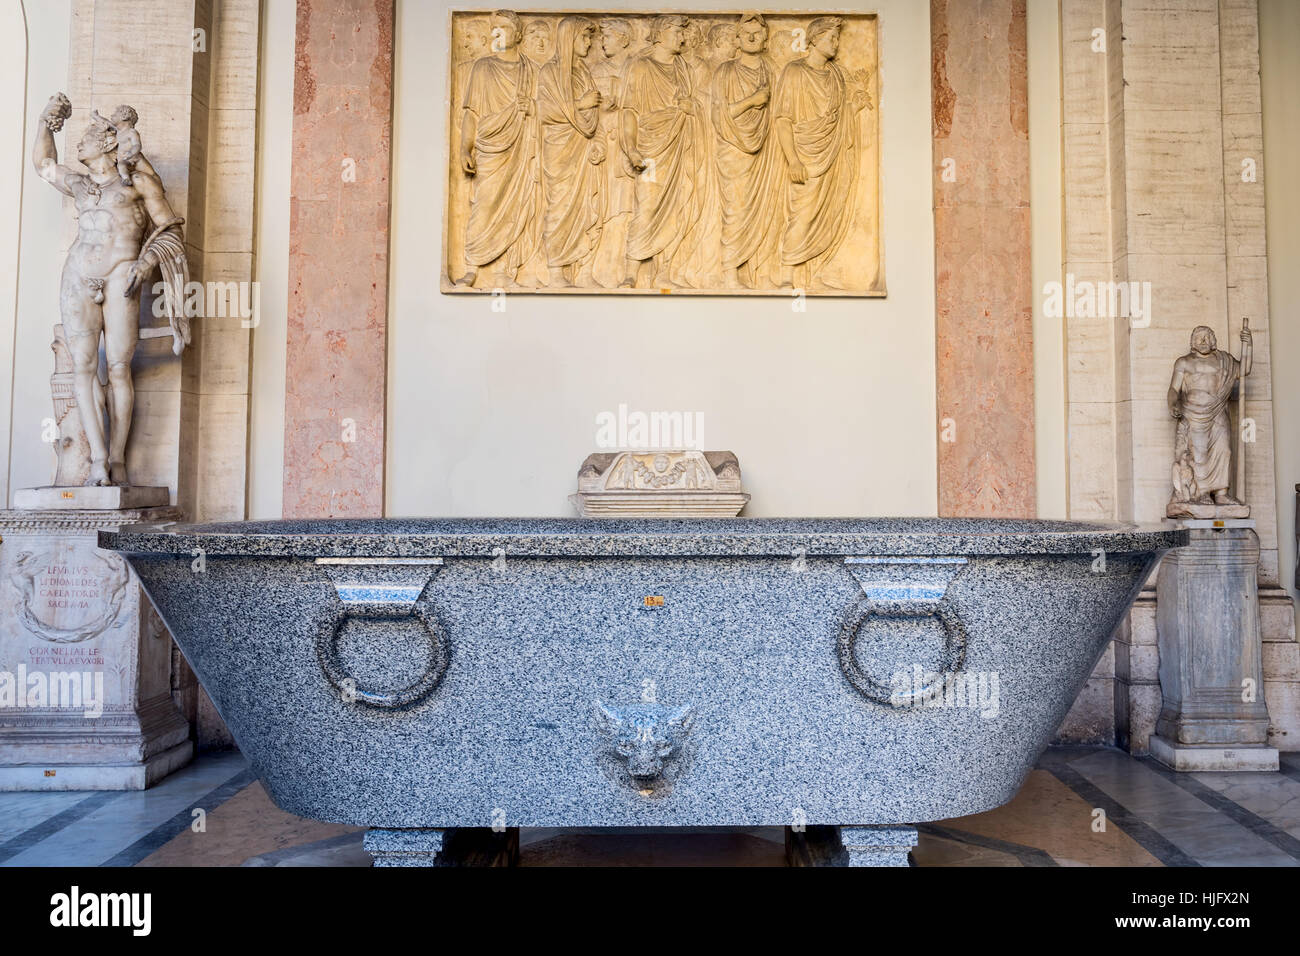 Antique Roman Bathtub, Vatican Museum, Vatican, Rome, Italy, Europe